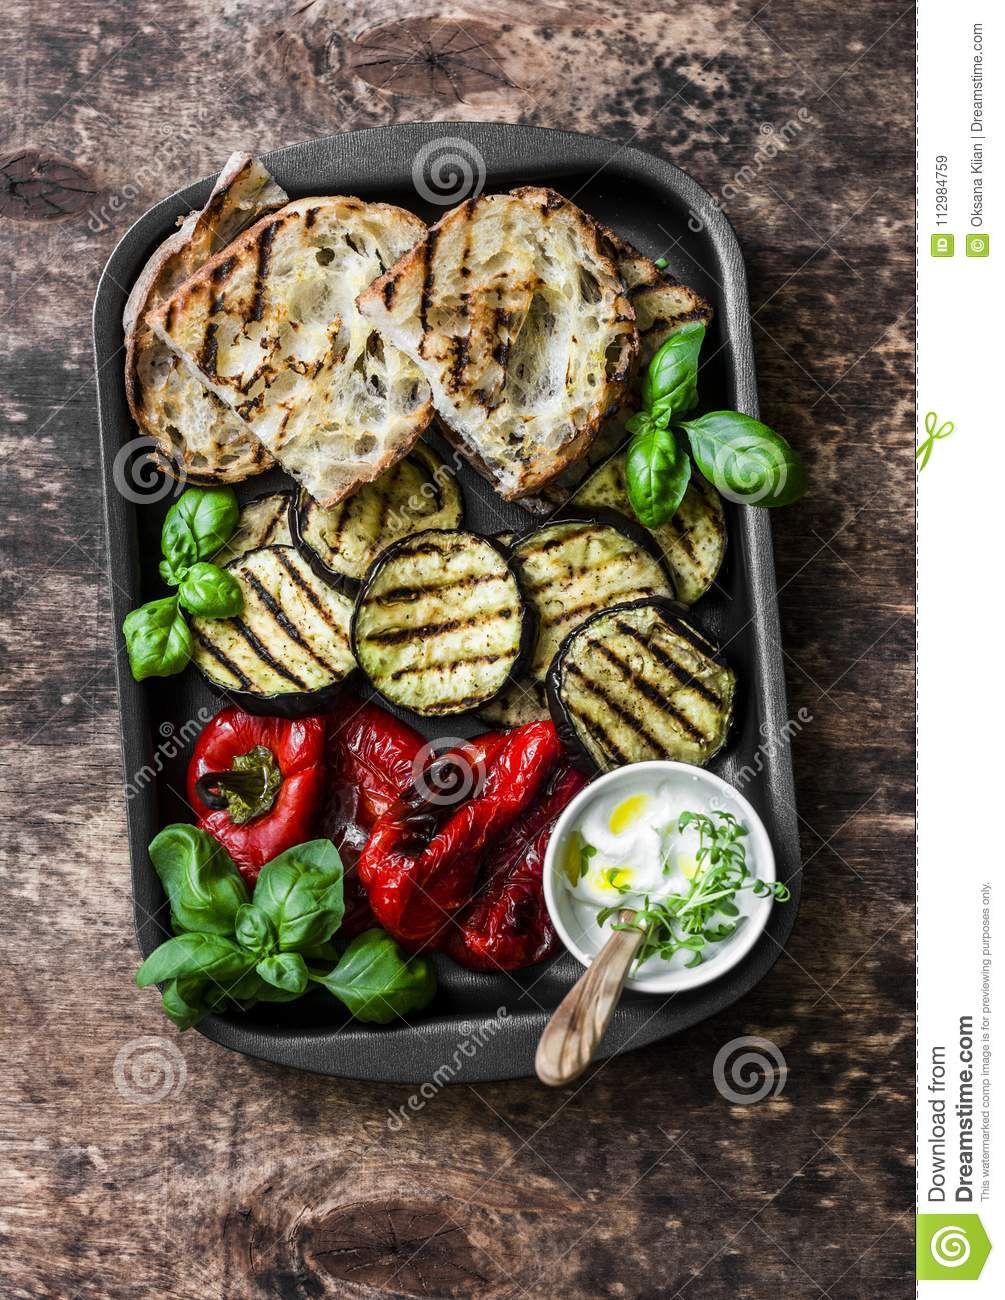 Summer picnic grilled vegetables - eggplant, bell peppers, ciabatta, yogurt sauce, basil in baking sheet on wooden background, top